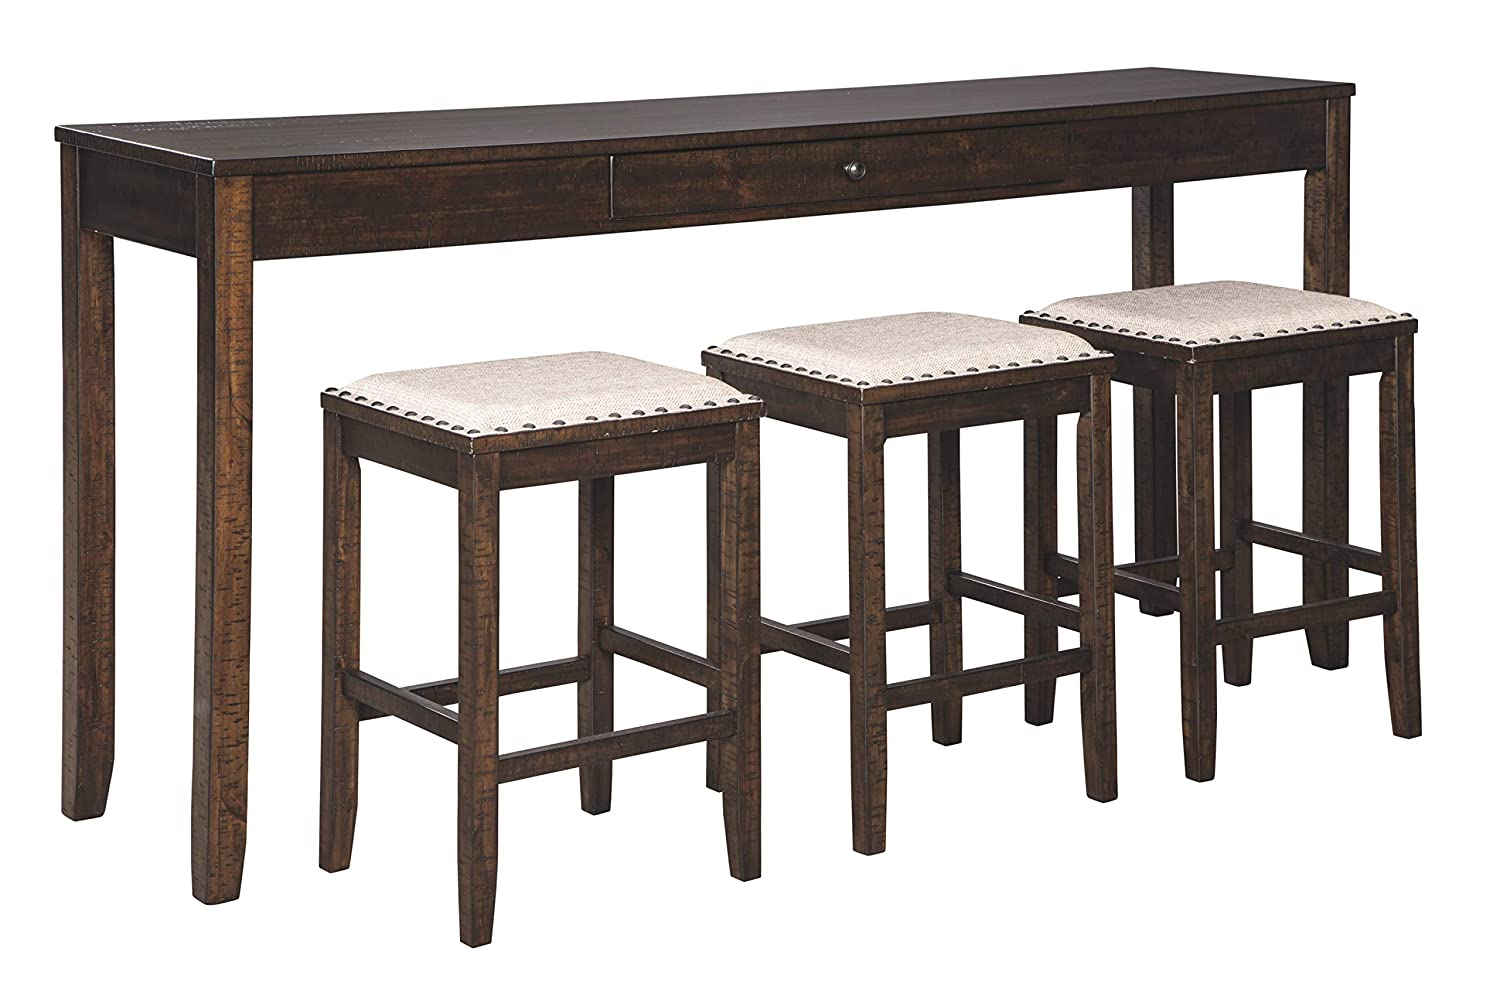 Signature Design By Ashley - Rokane Rectangular Dining Room Counter Table Set- Set of 4 - Casual Style - Brown